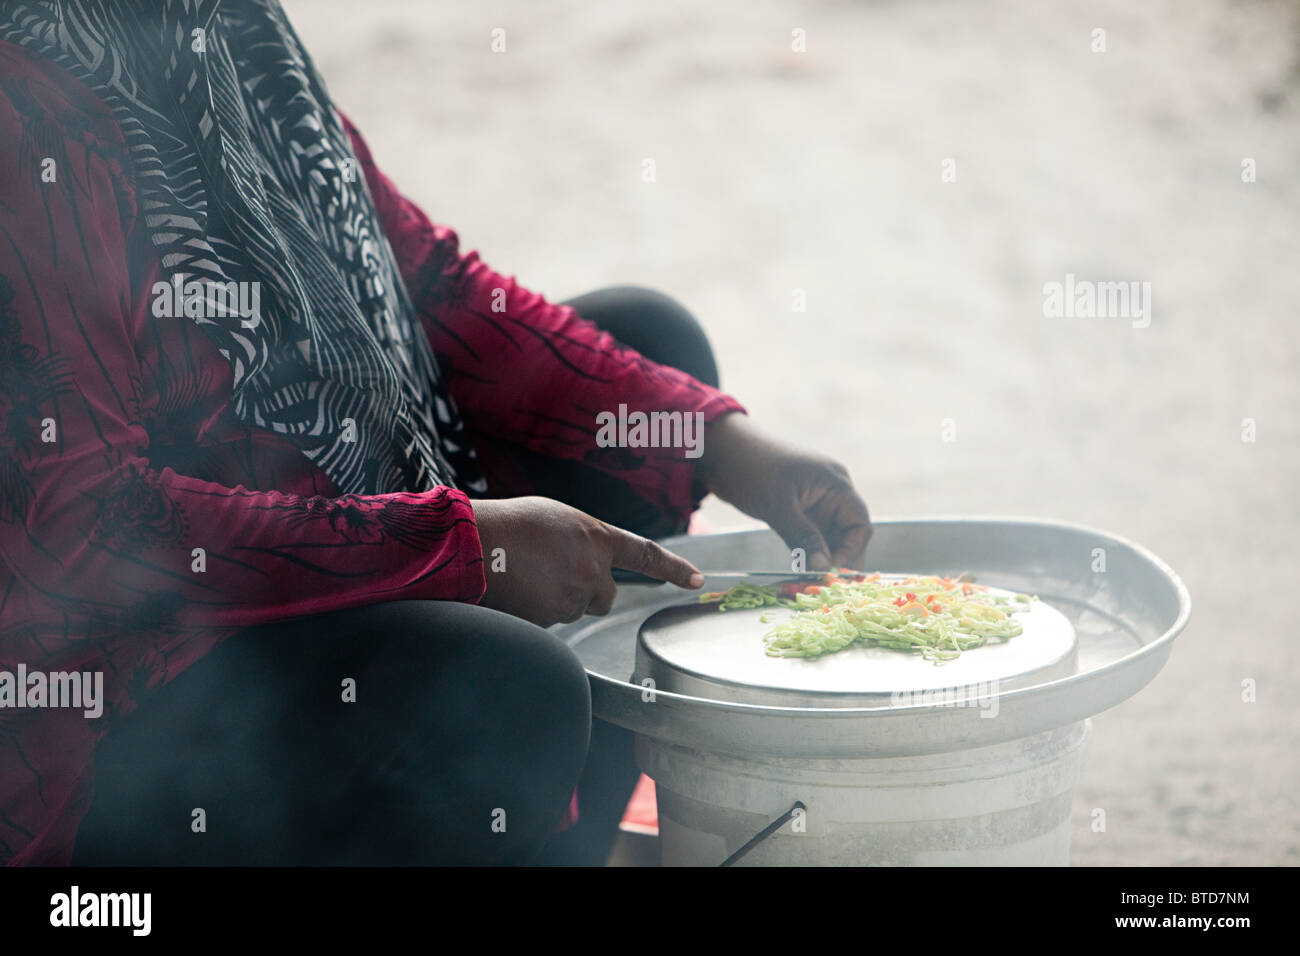 Person making curry, Gan Island, Laamu Atoll, Maldives - Stock Image